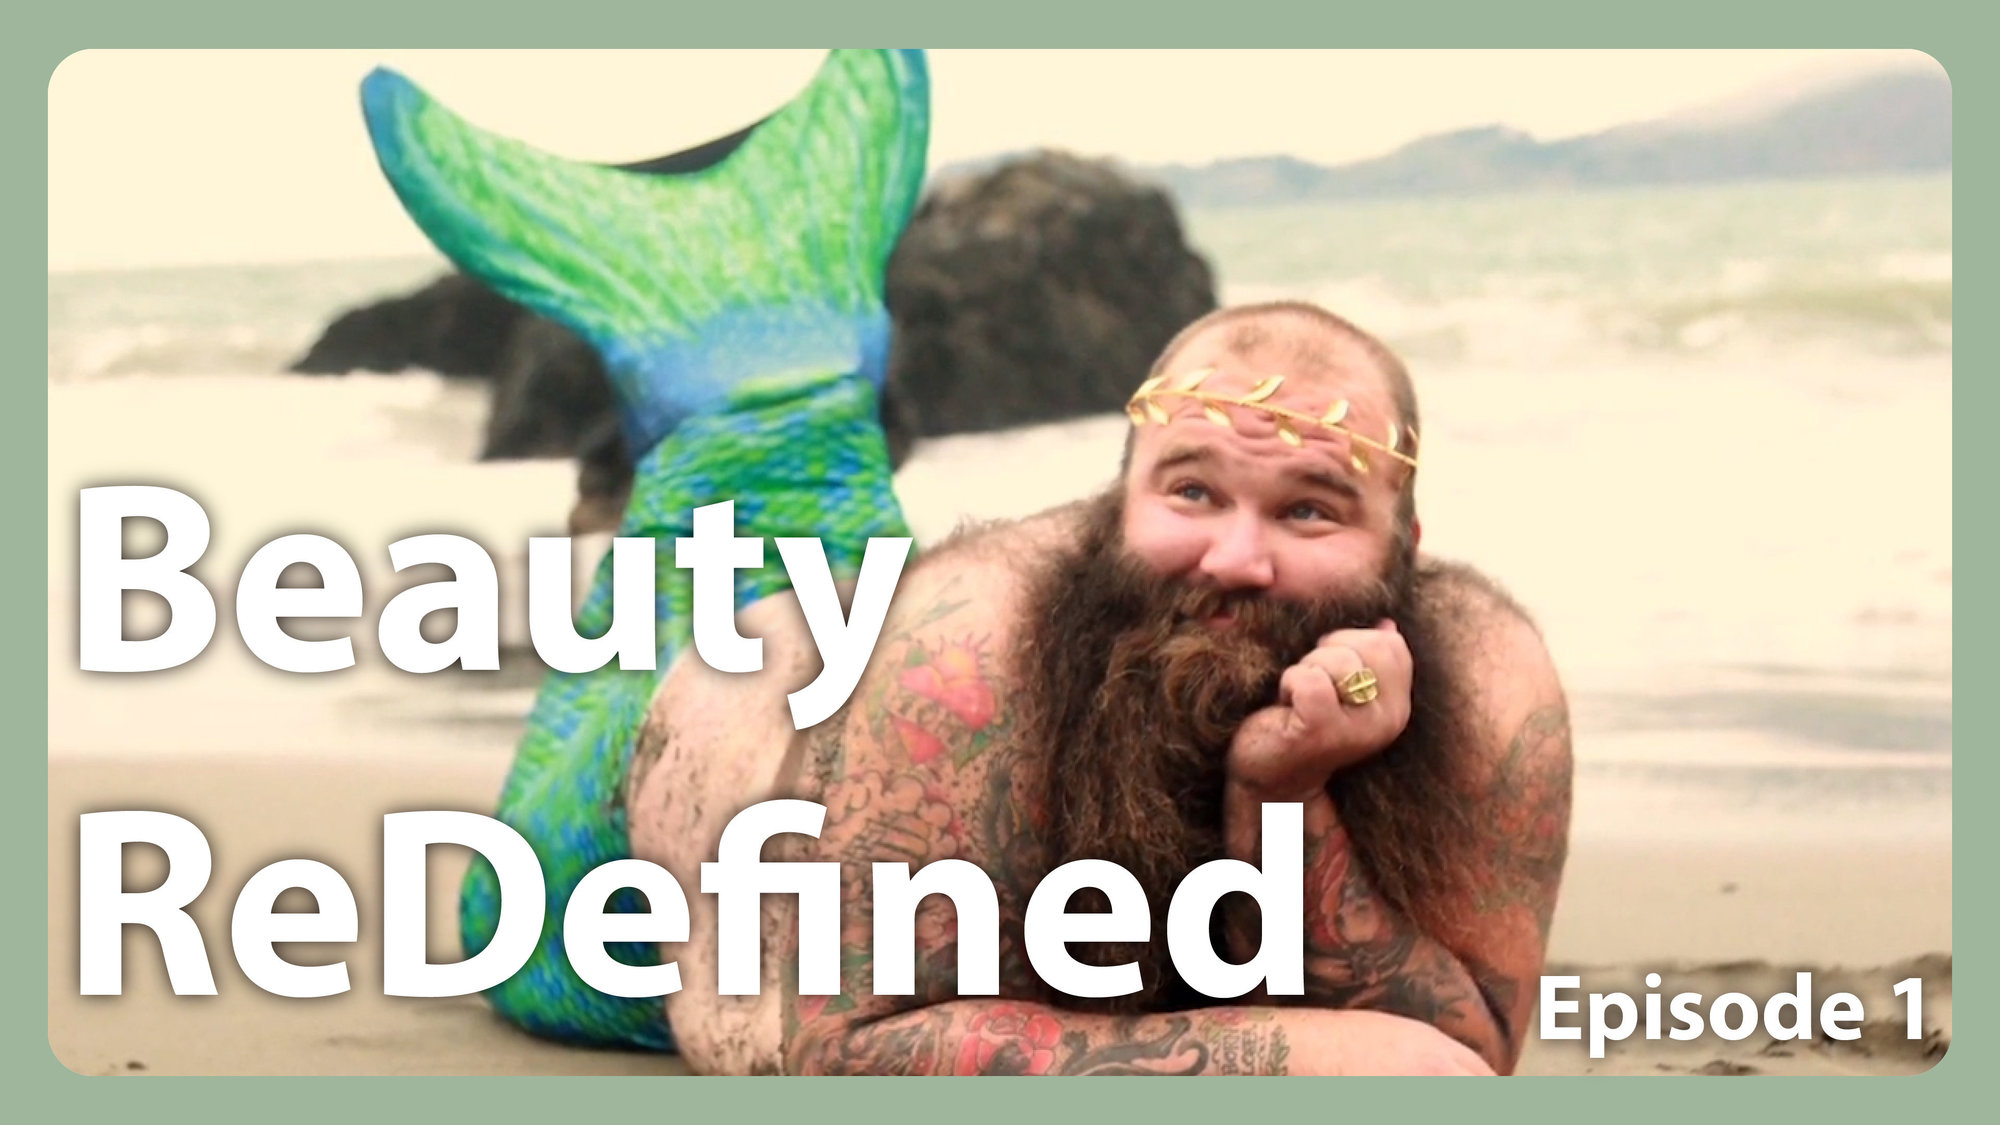 SERIES: Beauty ReDefined - Meet Josh, the Bail Bondsman turned Calendar Model who promotes confidence and self-acceptance.